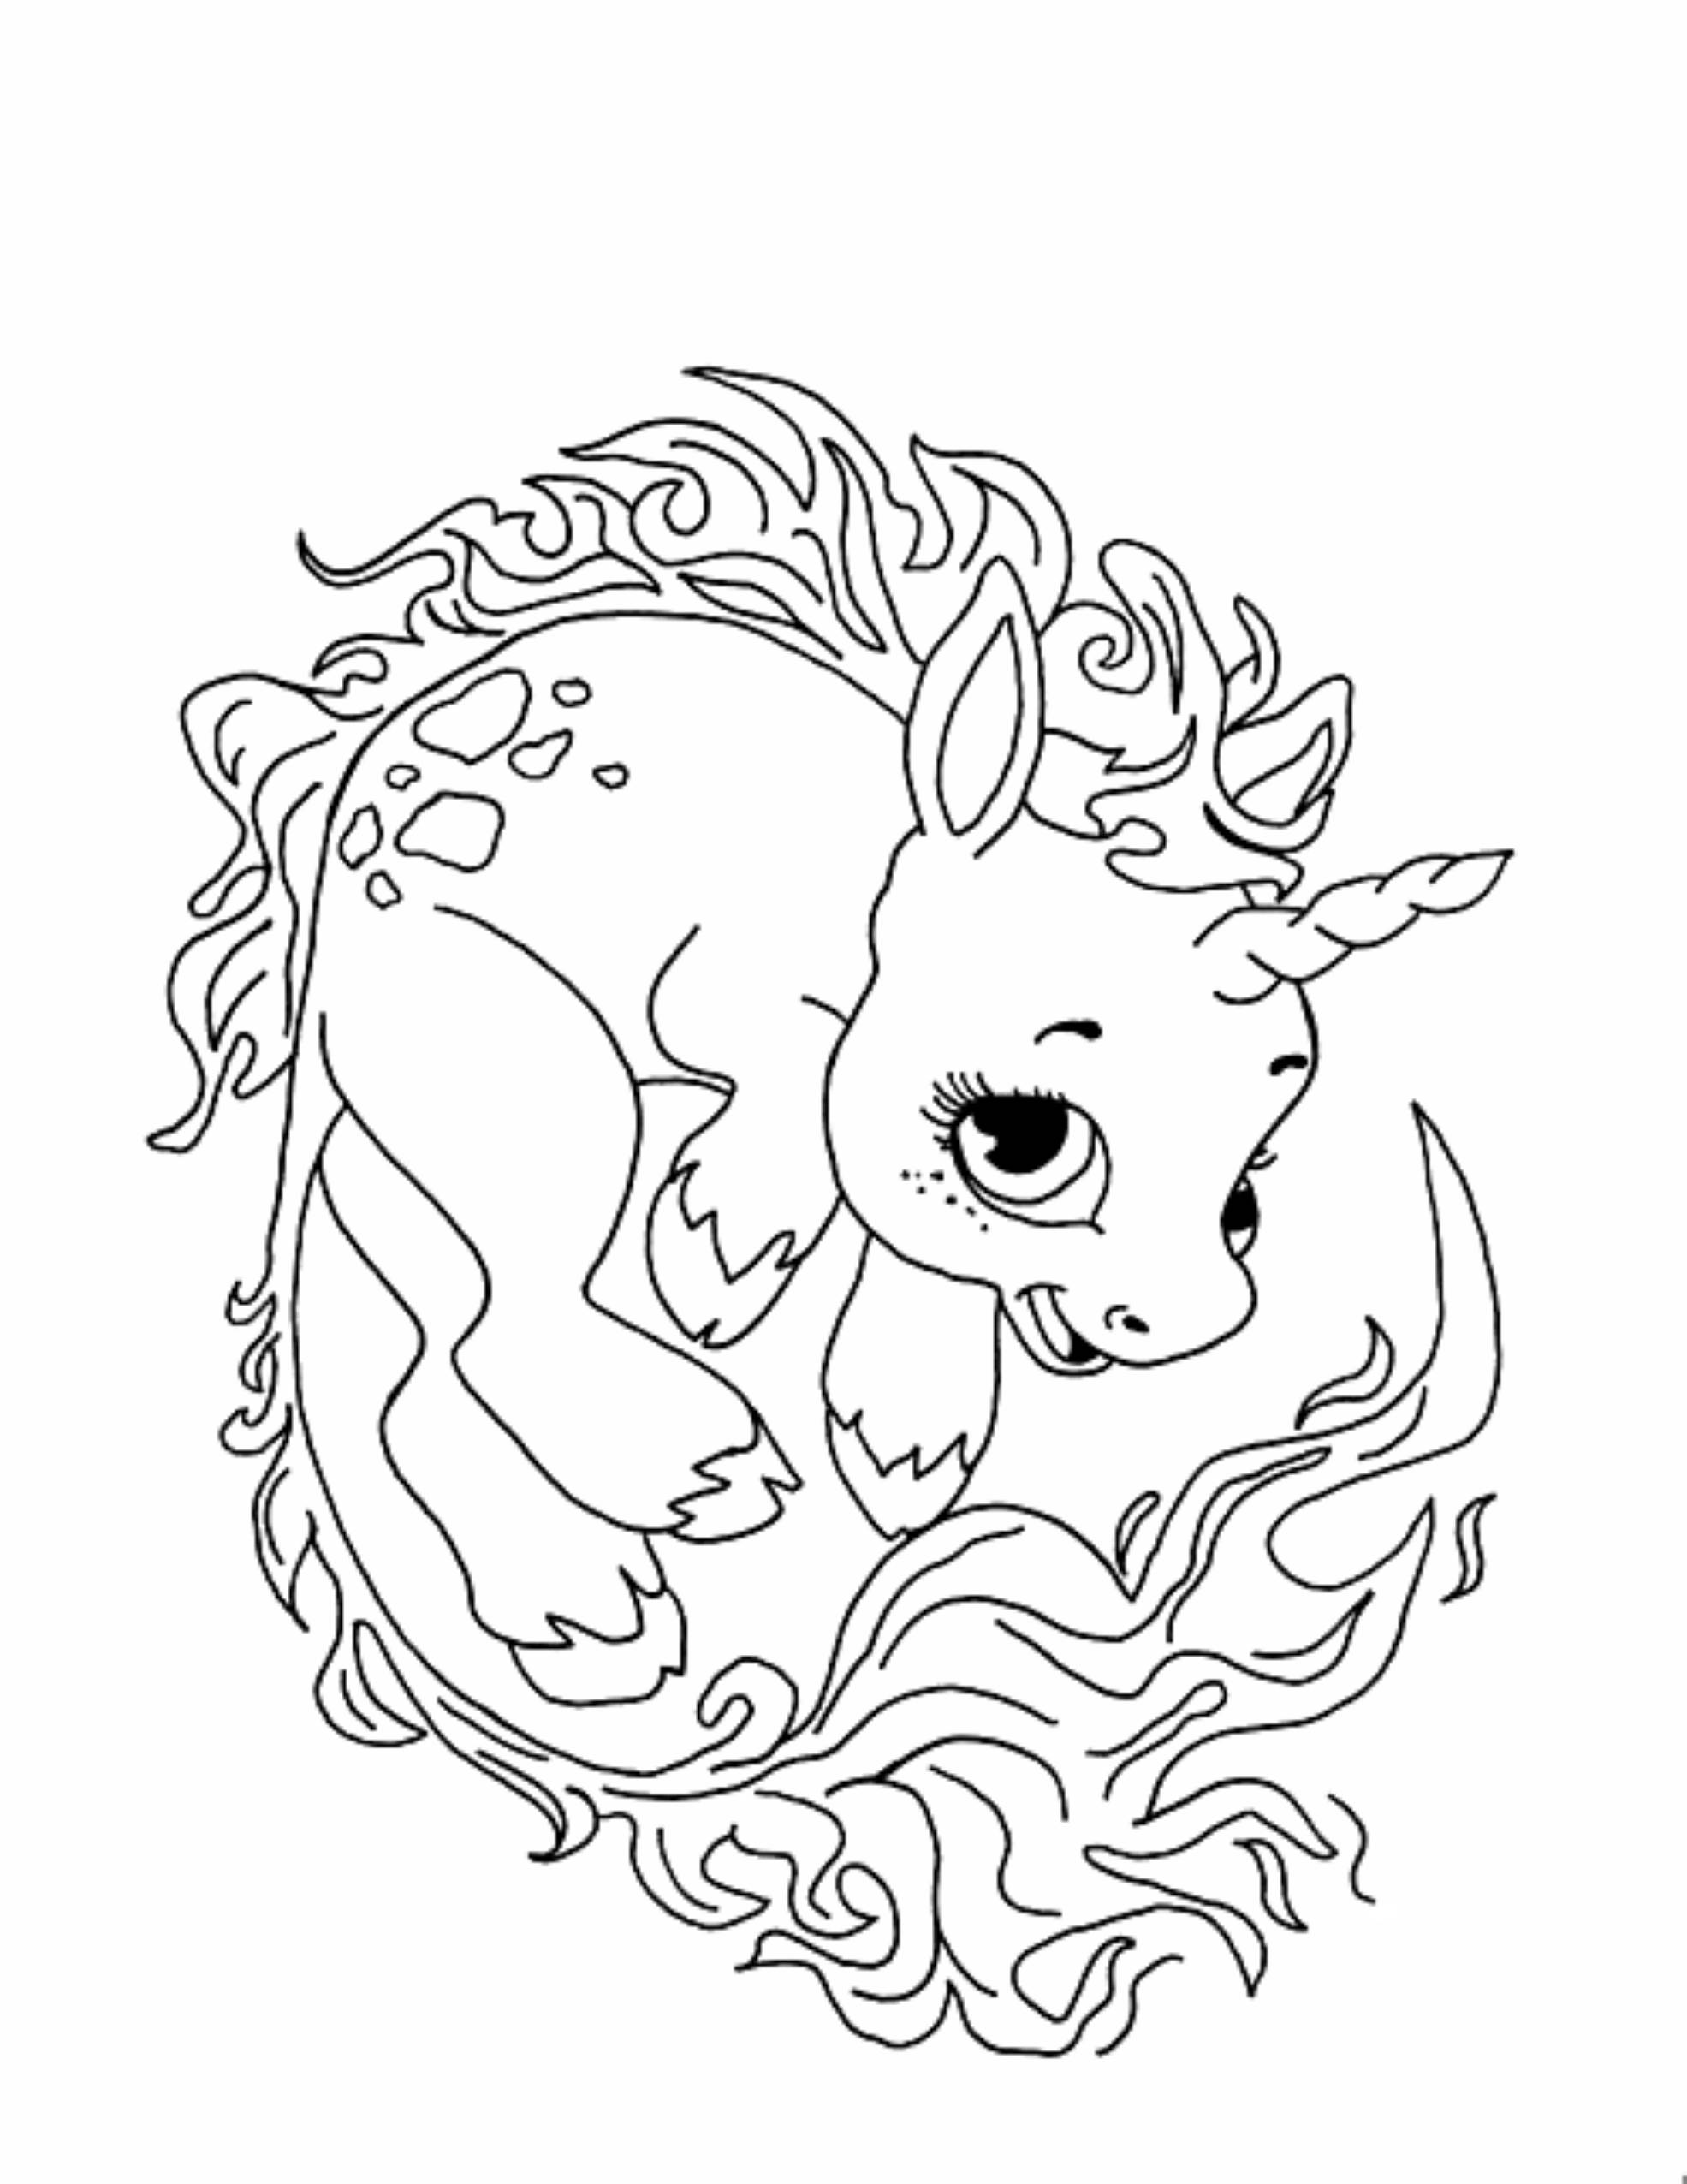 Print Download Unicorn Coloring Pages For Children